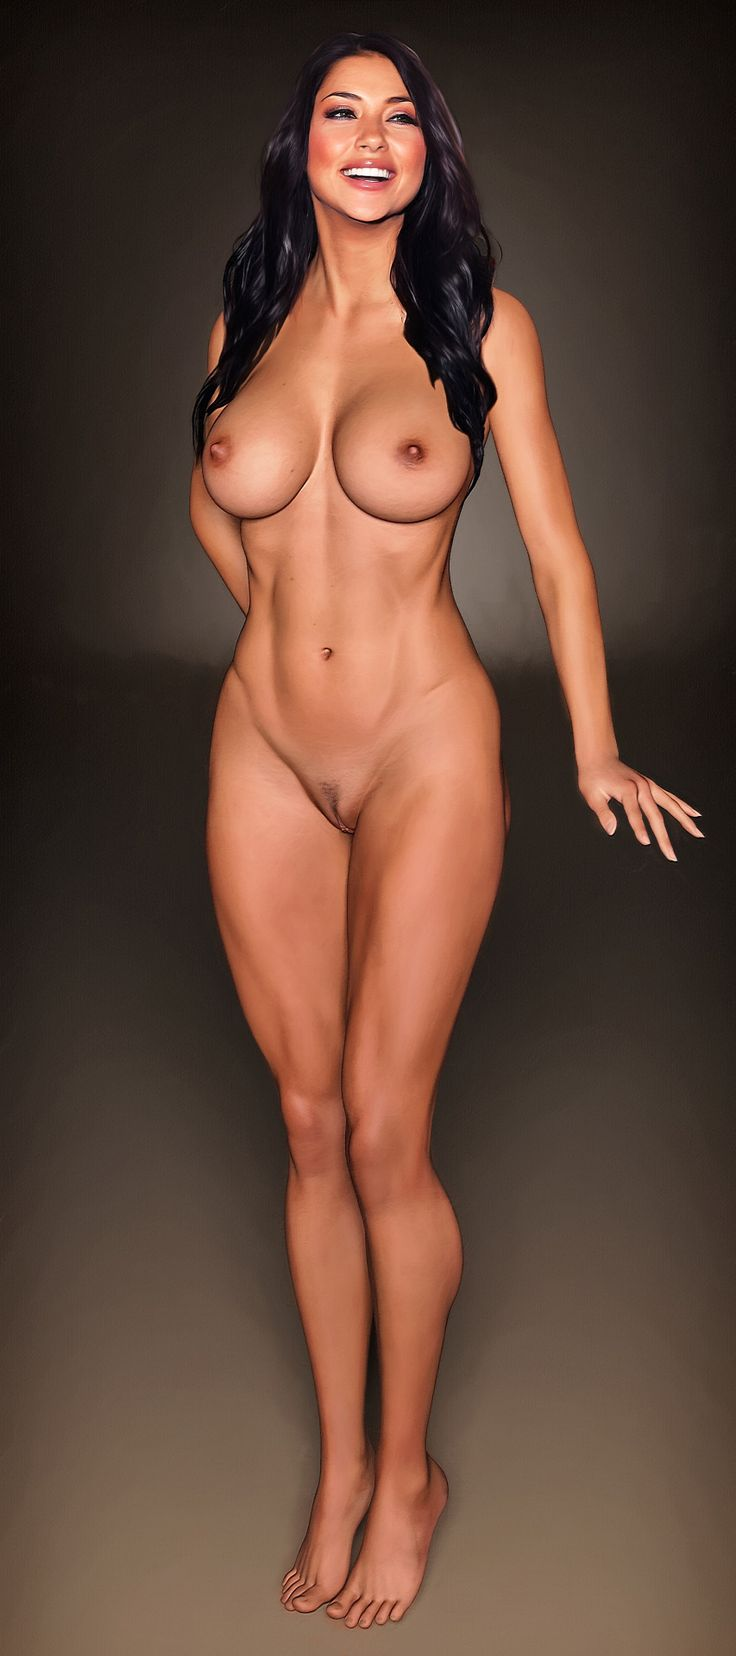 girl nude posing on mini